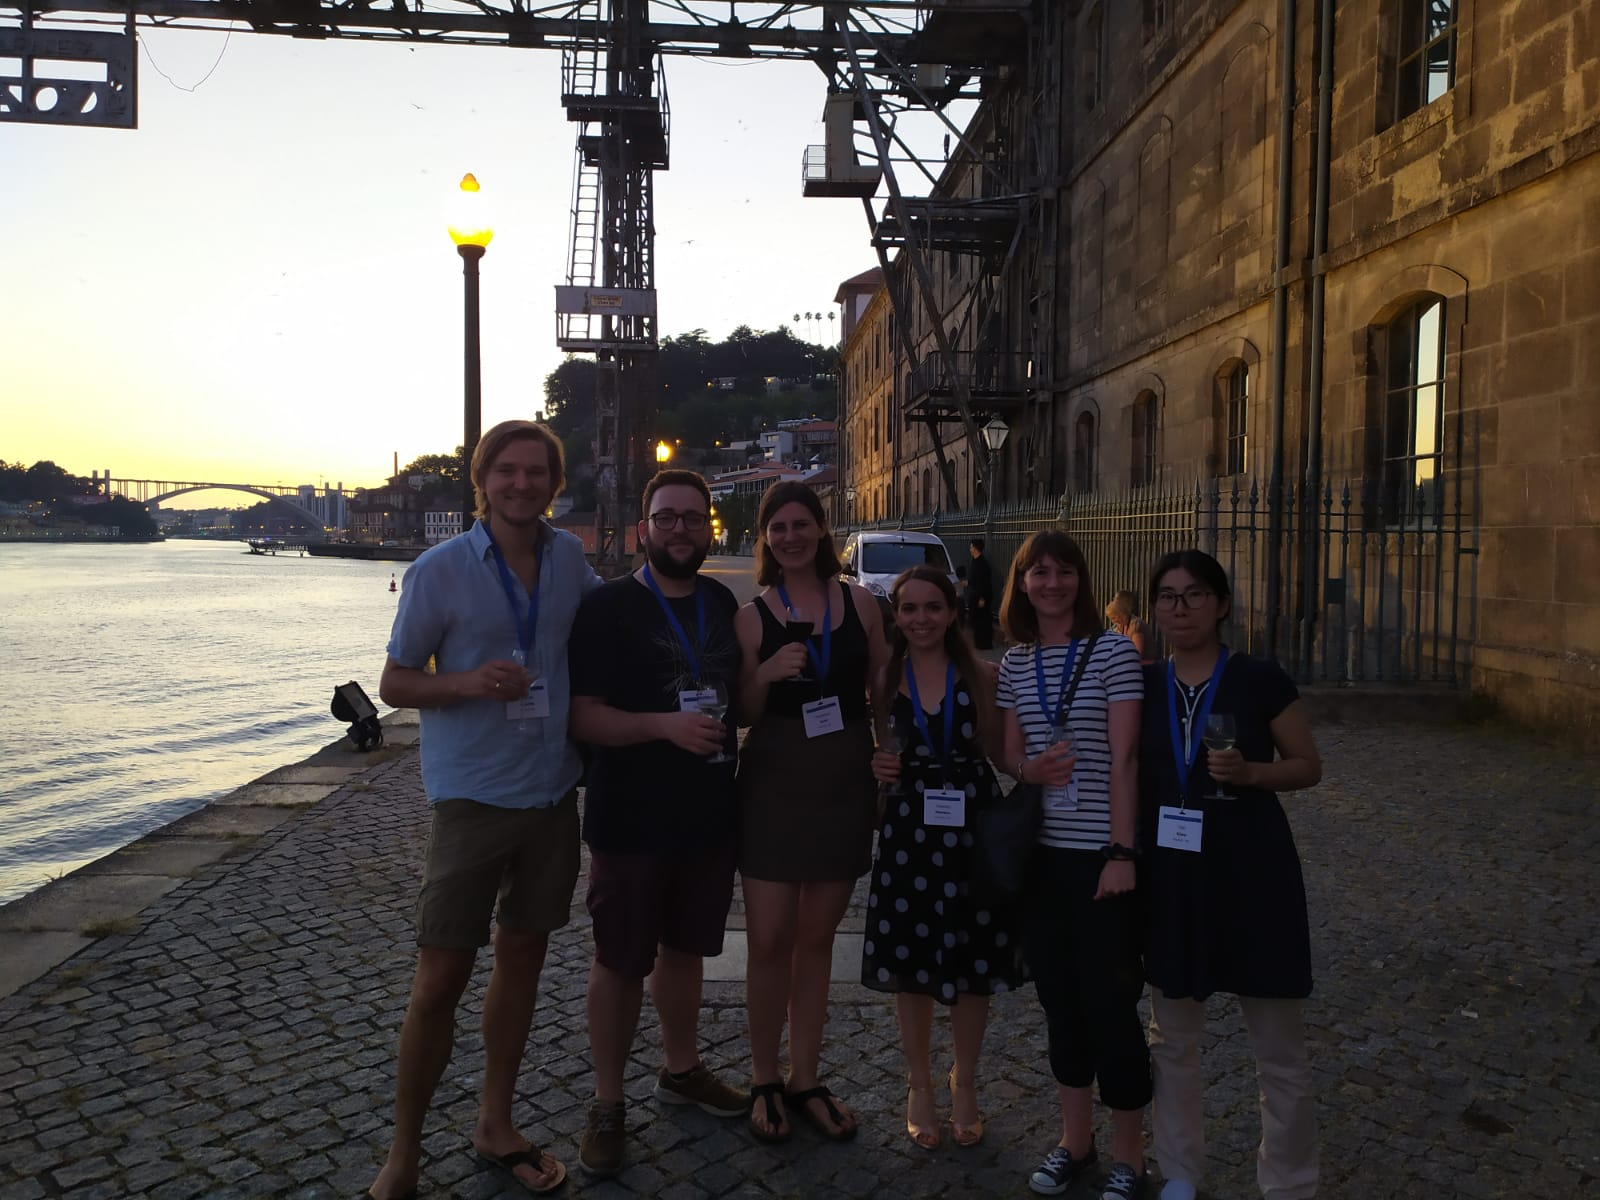 Euroglia 2020 in Porto - The group